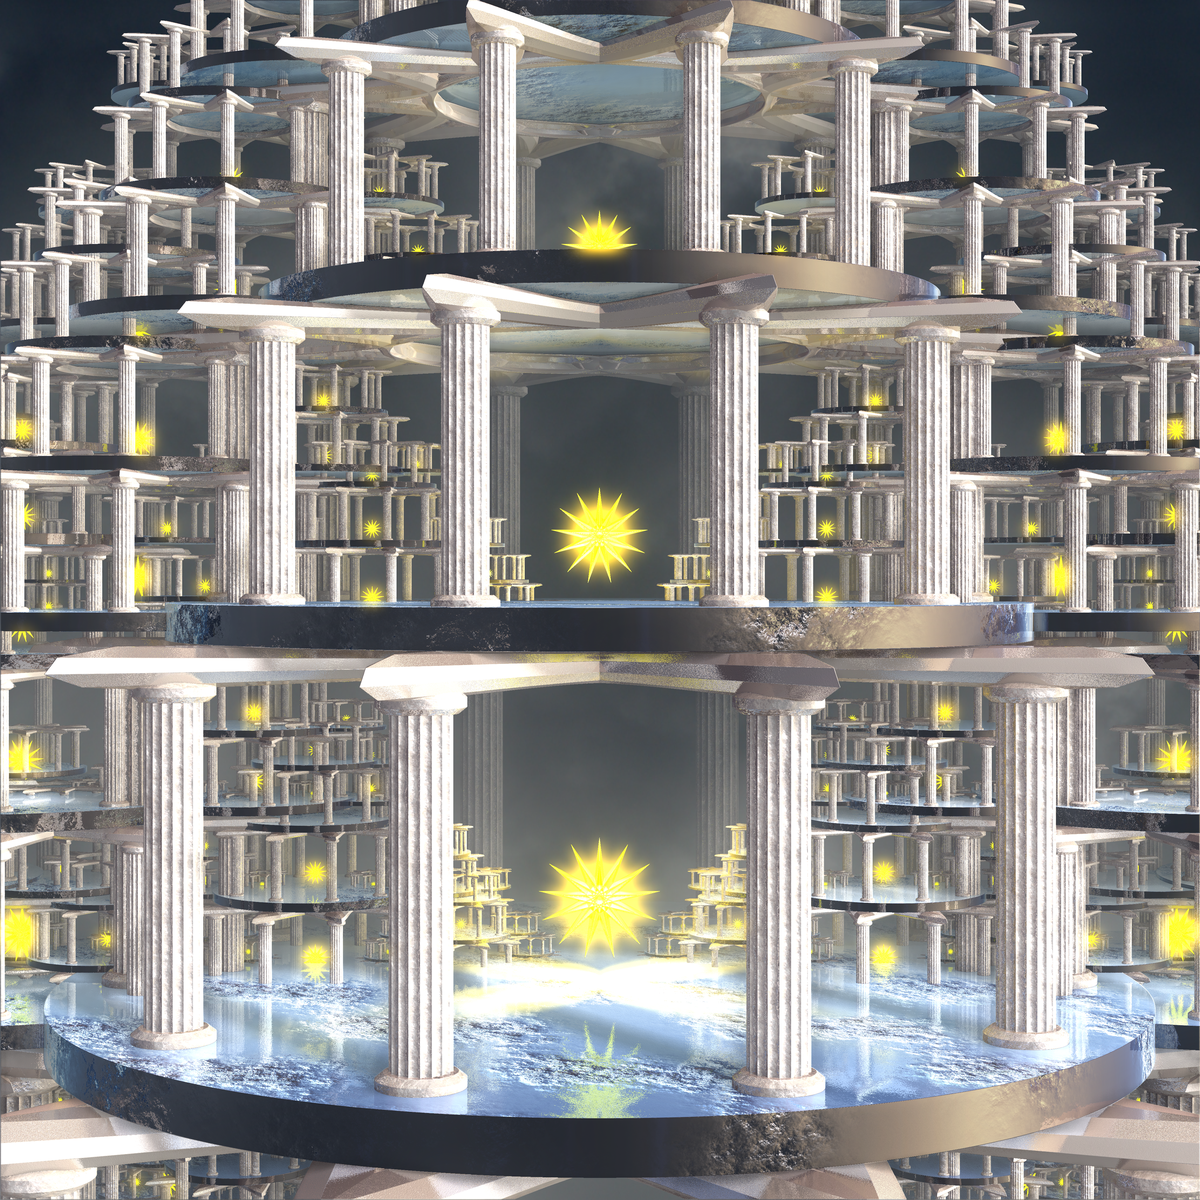 The Temple of Helios